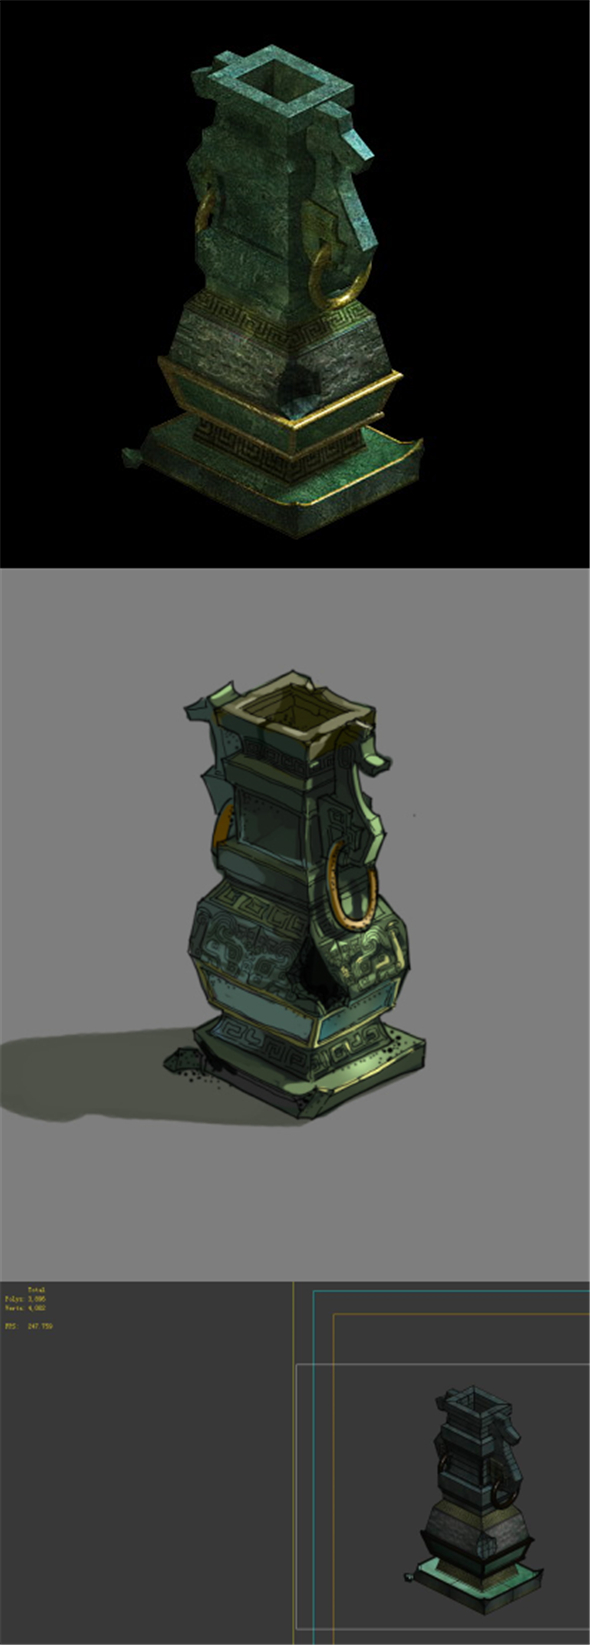 Game Model - Broken Bronze Device 3 - 3DOcean Item for Sale